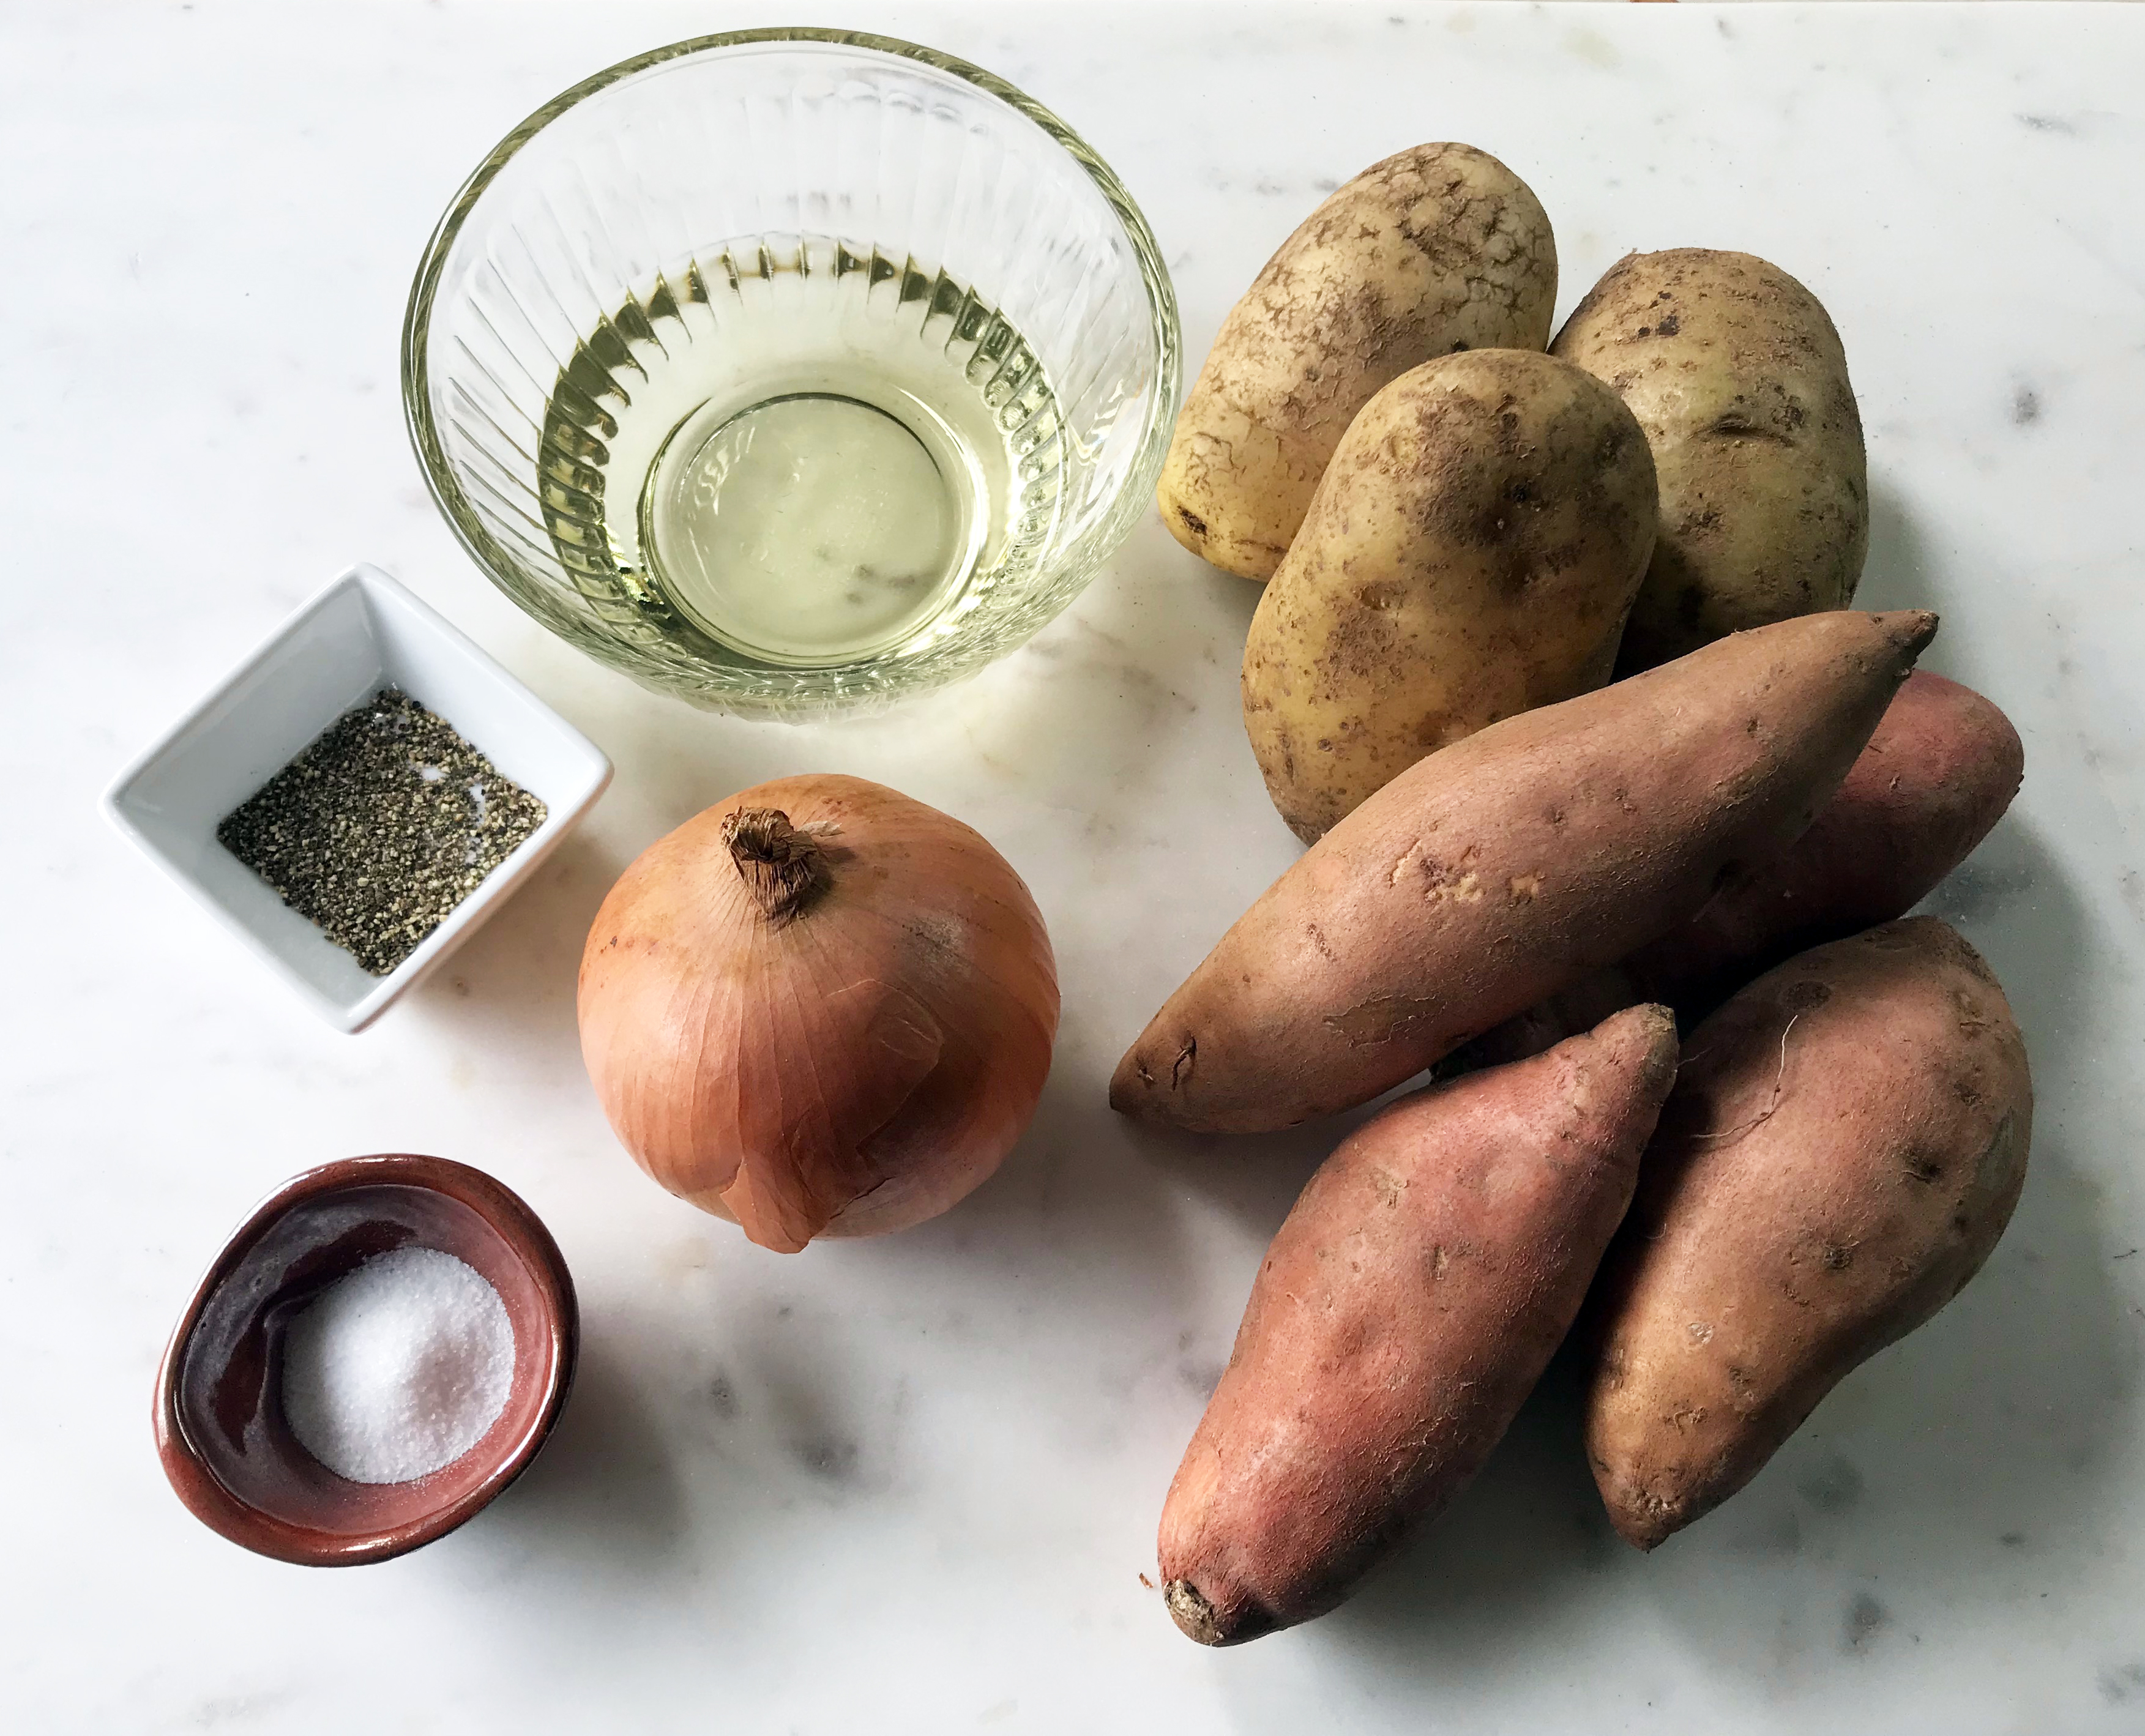 KitchAnnette Roasted Potatoes Ingredients